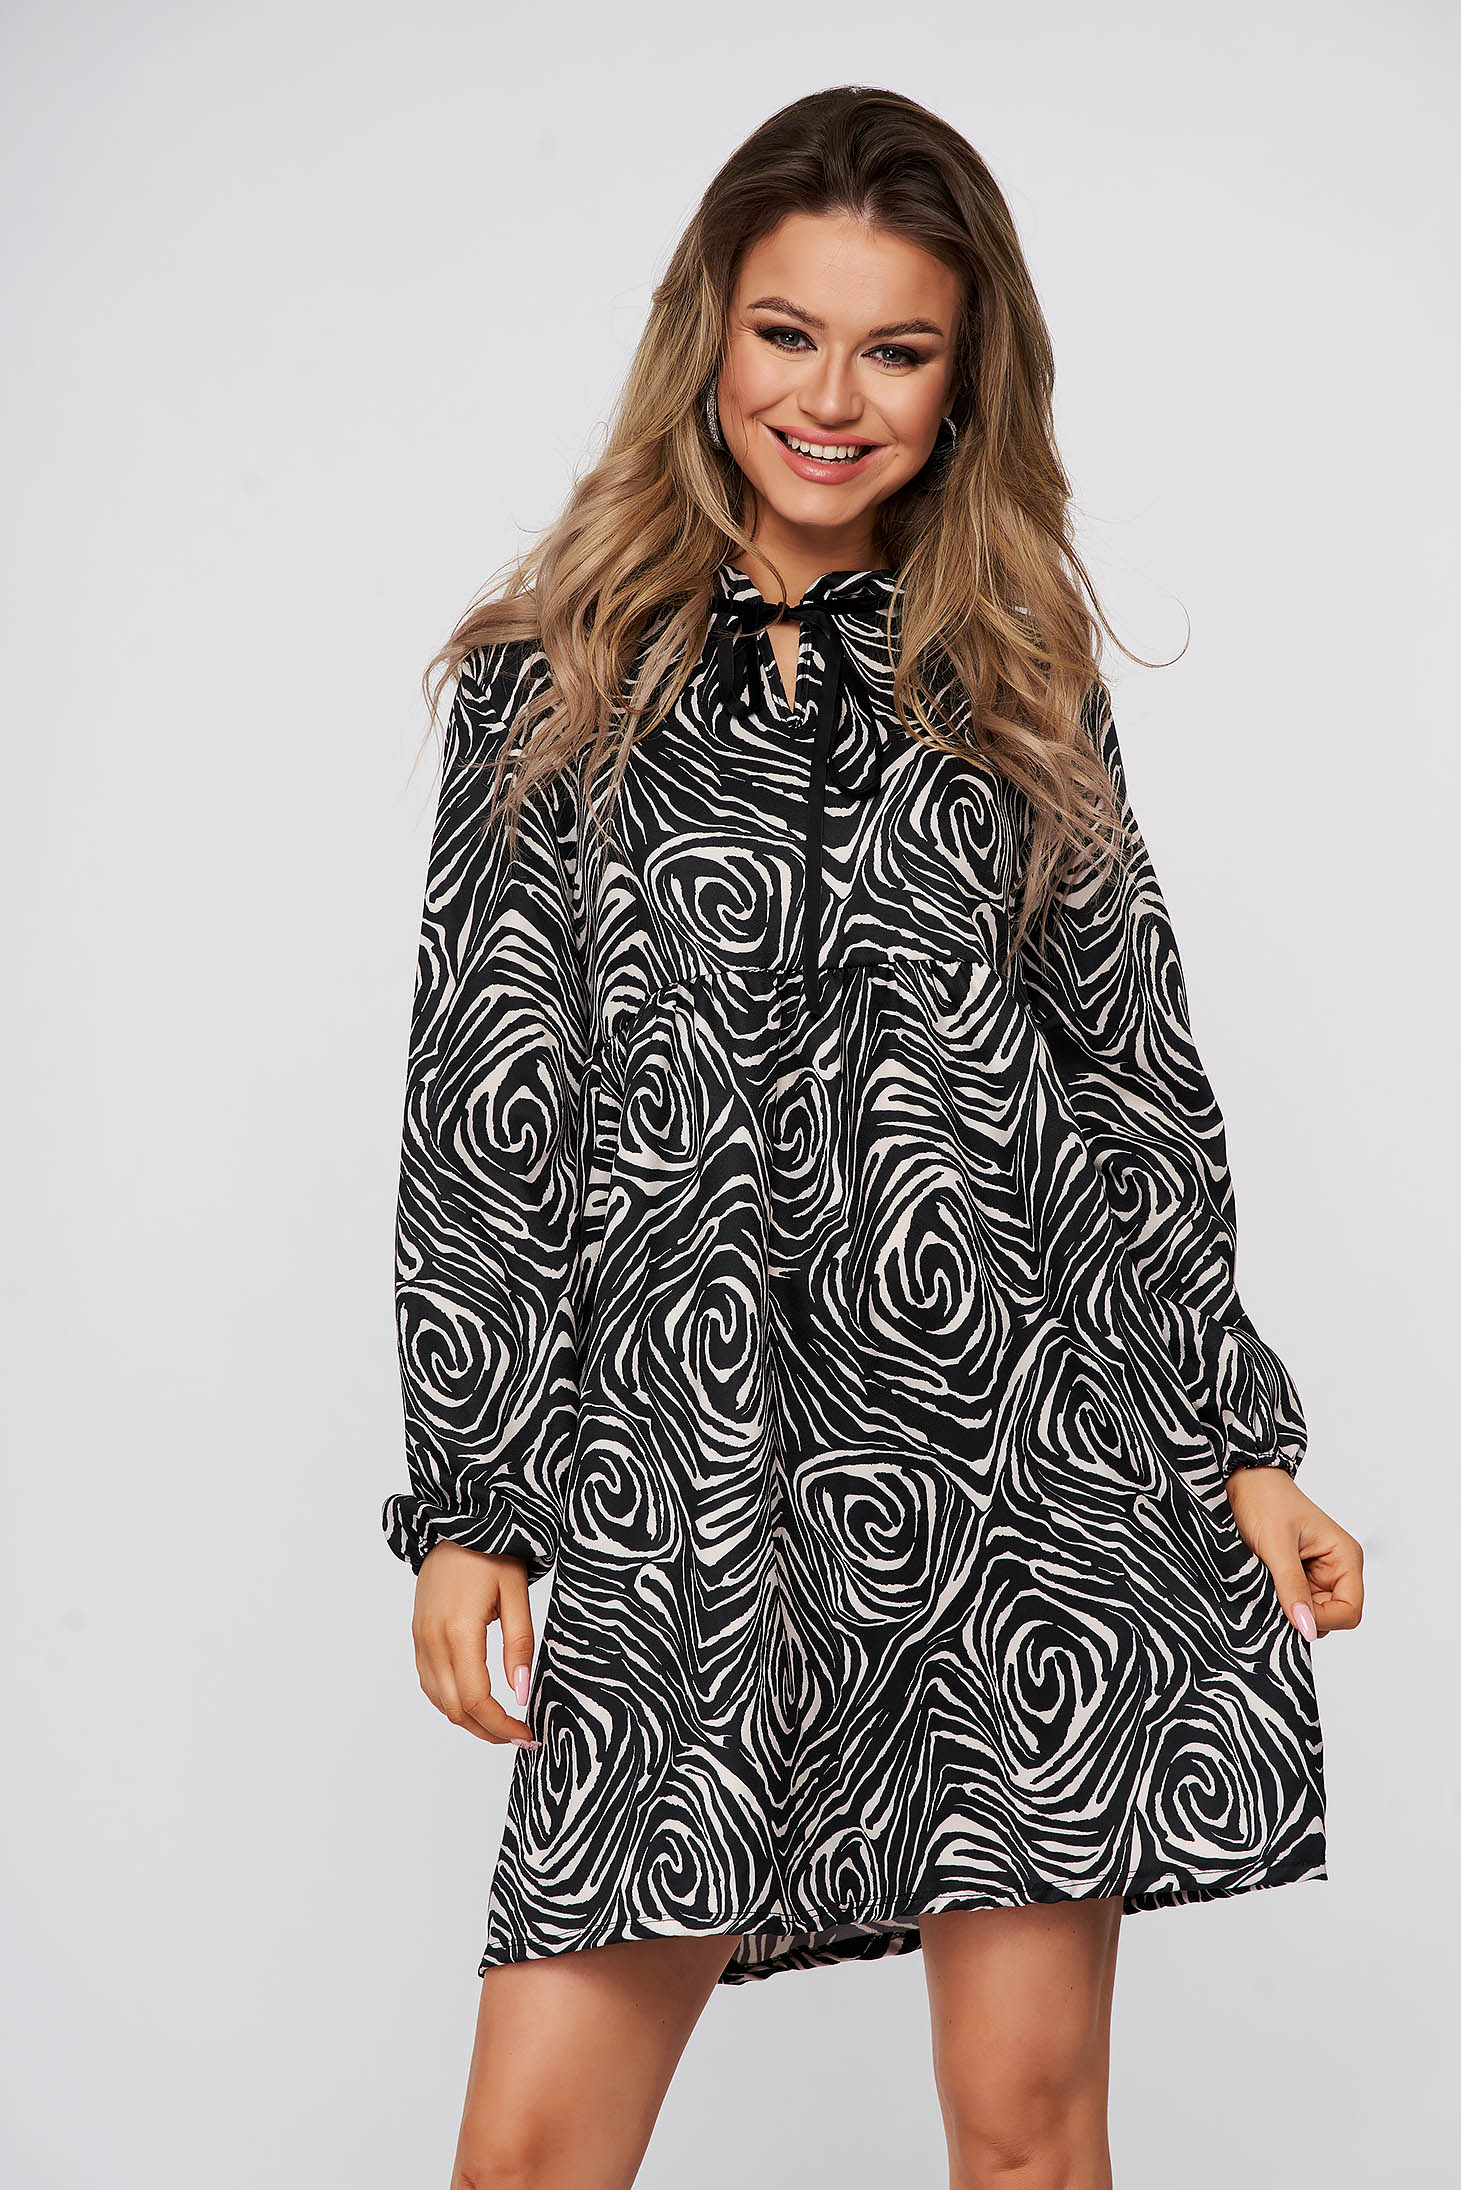 Black dress short cut daily loose fit airy fabric long sleeved